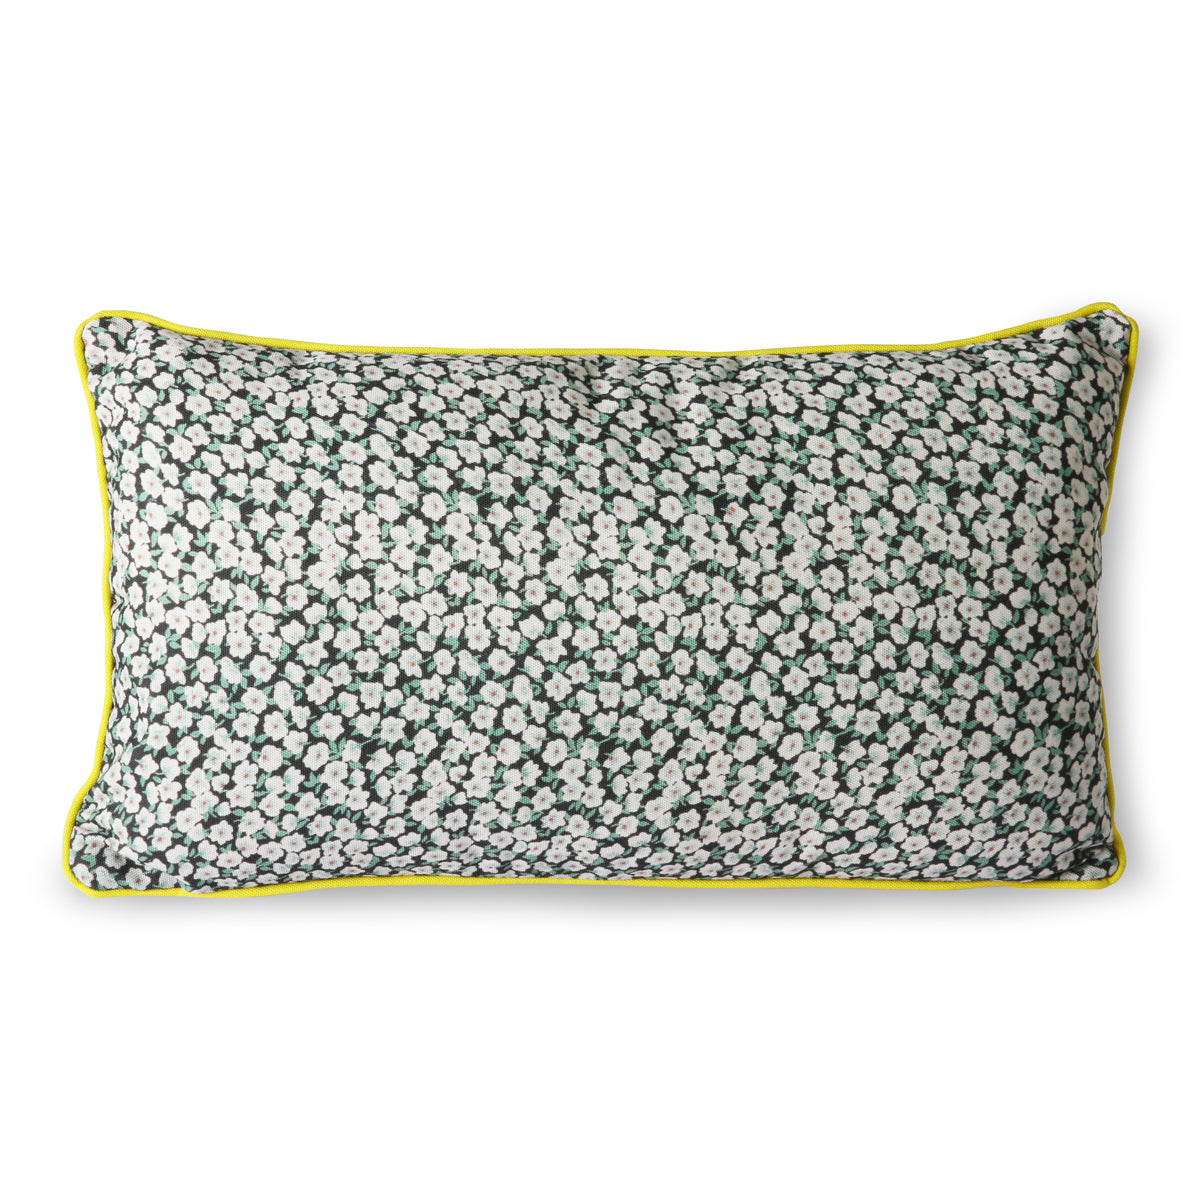 HK Living Doris for hk living: printed cushion green (35x60)